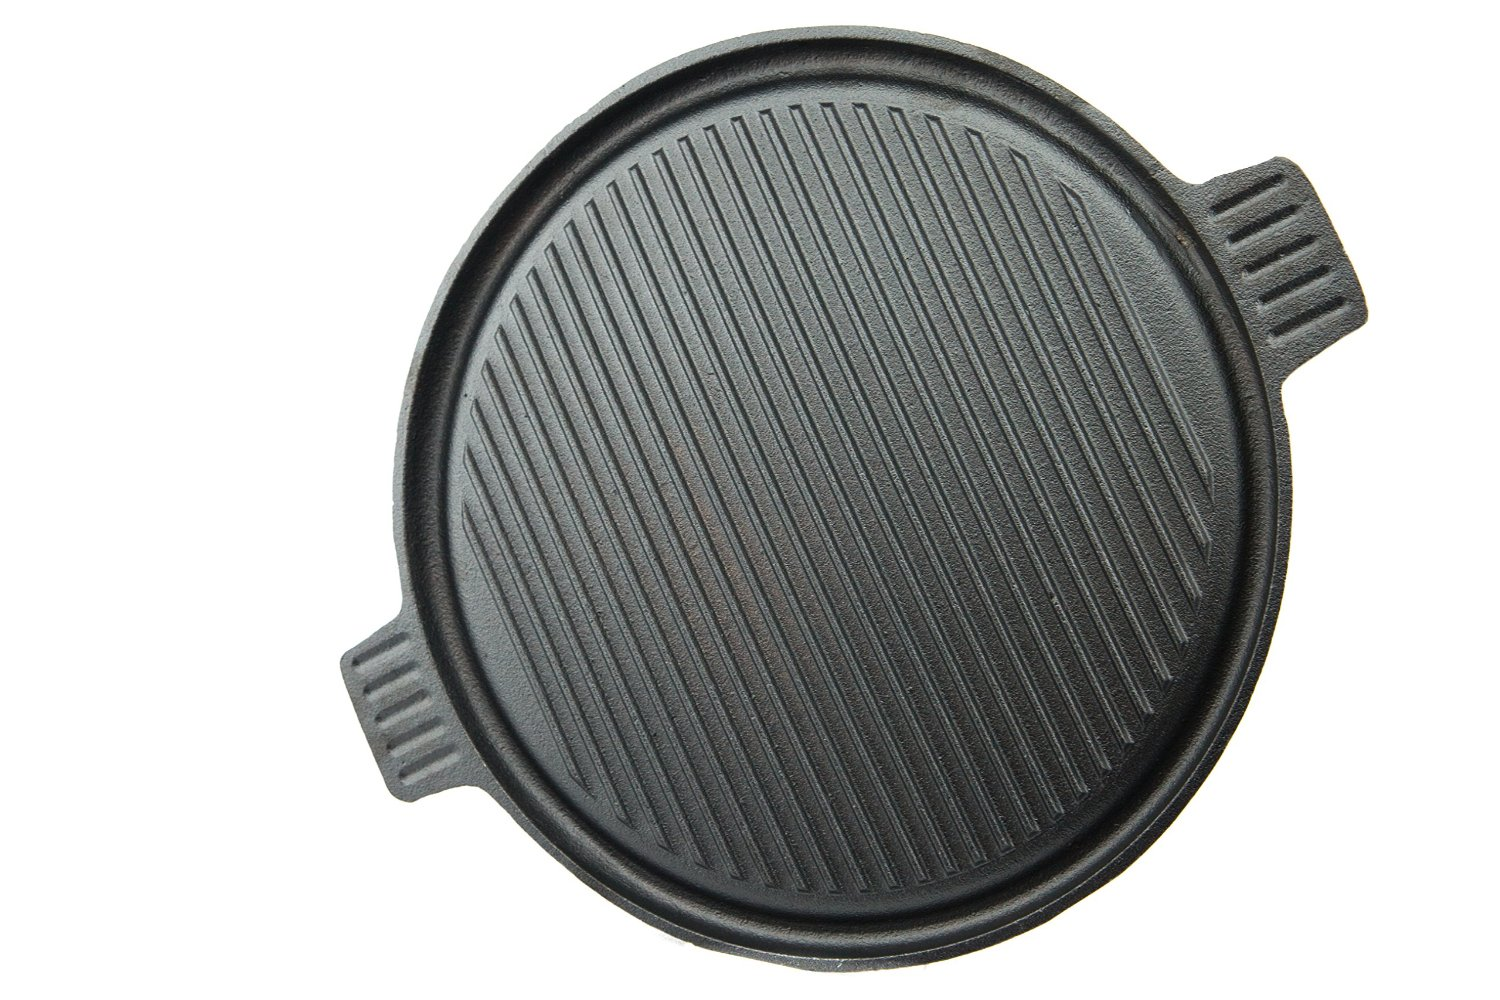 14 inch 3 in 1 Reversible Cast Iron Pizza Pan, Grill and Griddle by Useful.